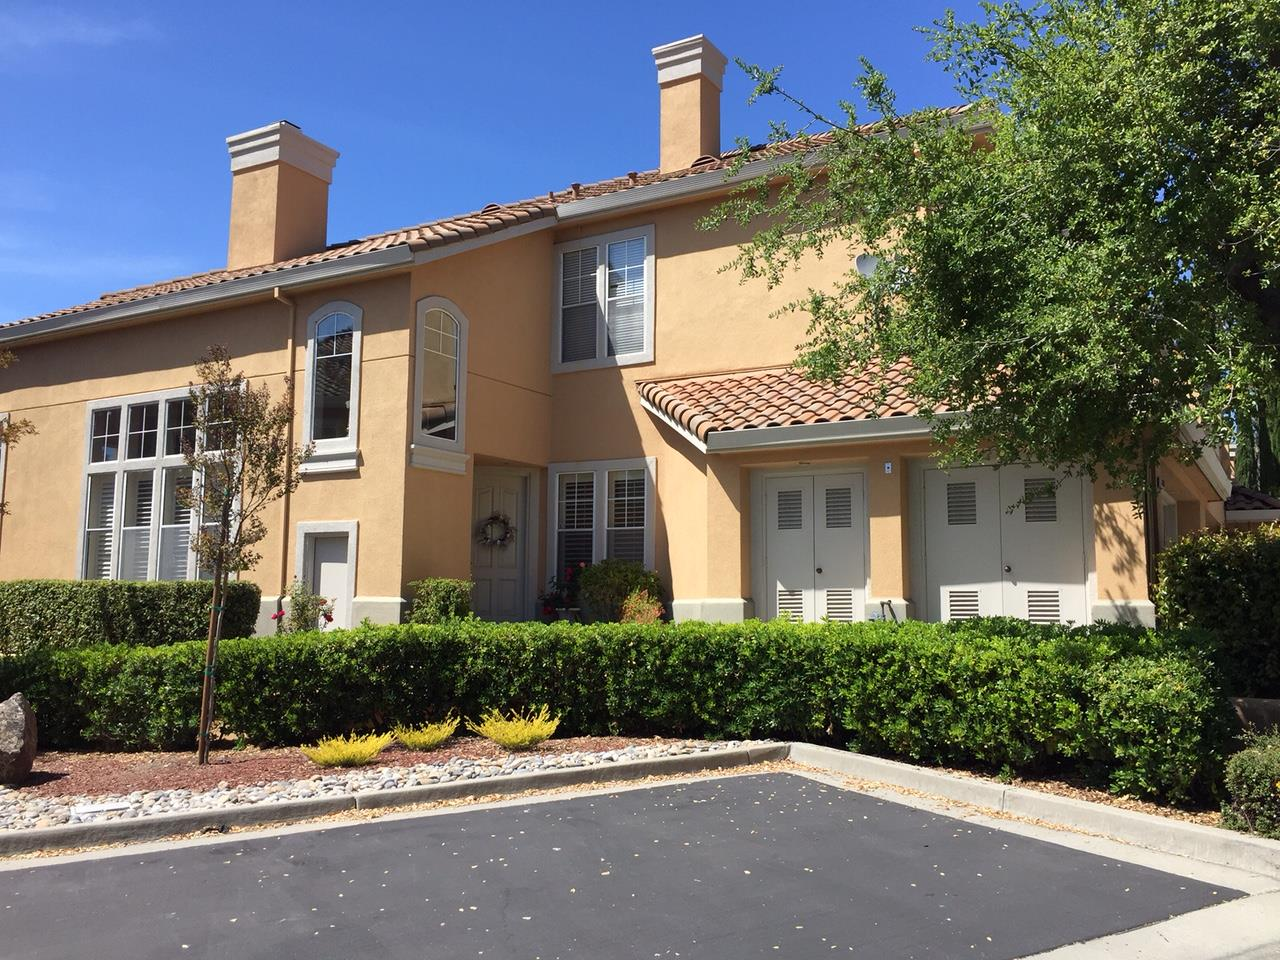 6115 Country Club PKWY, Evergreen, California